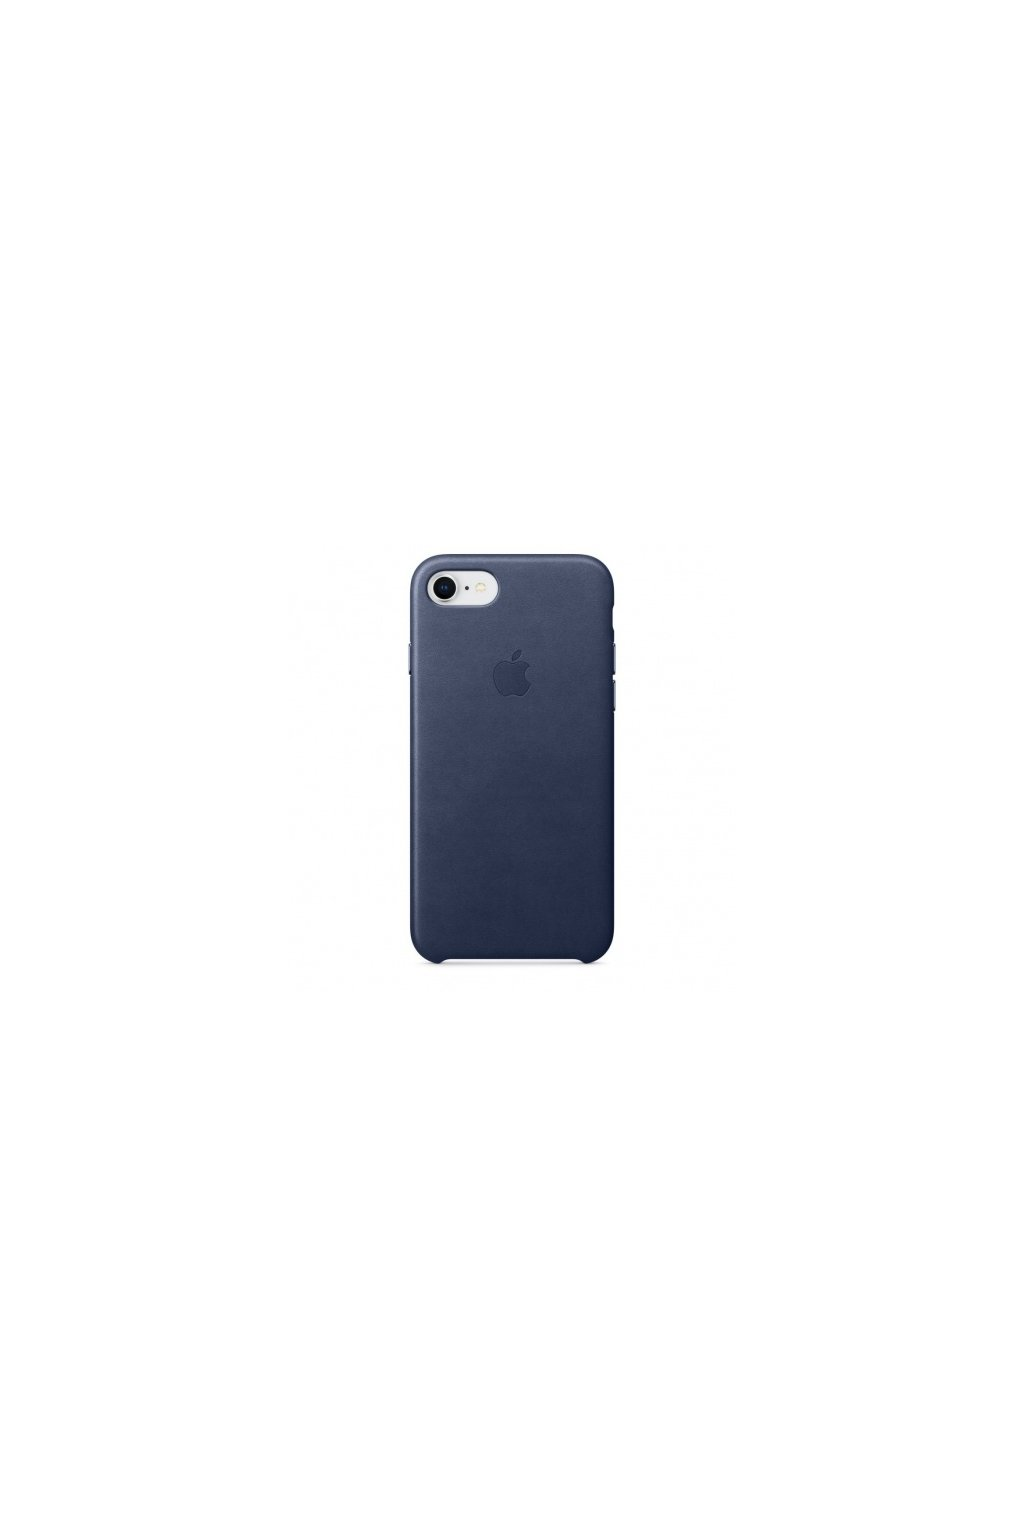 mqh82zm:a 8:7 Leather Case Midnight